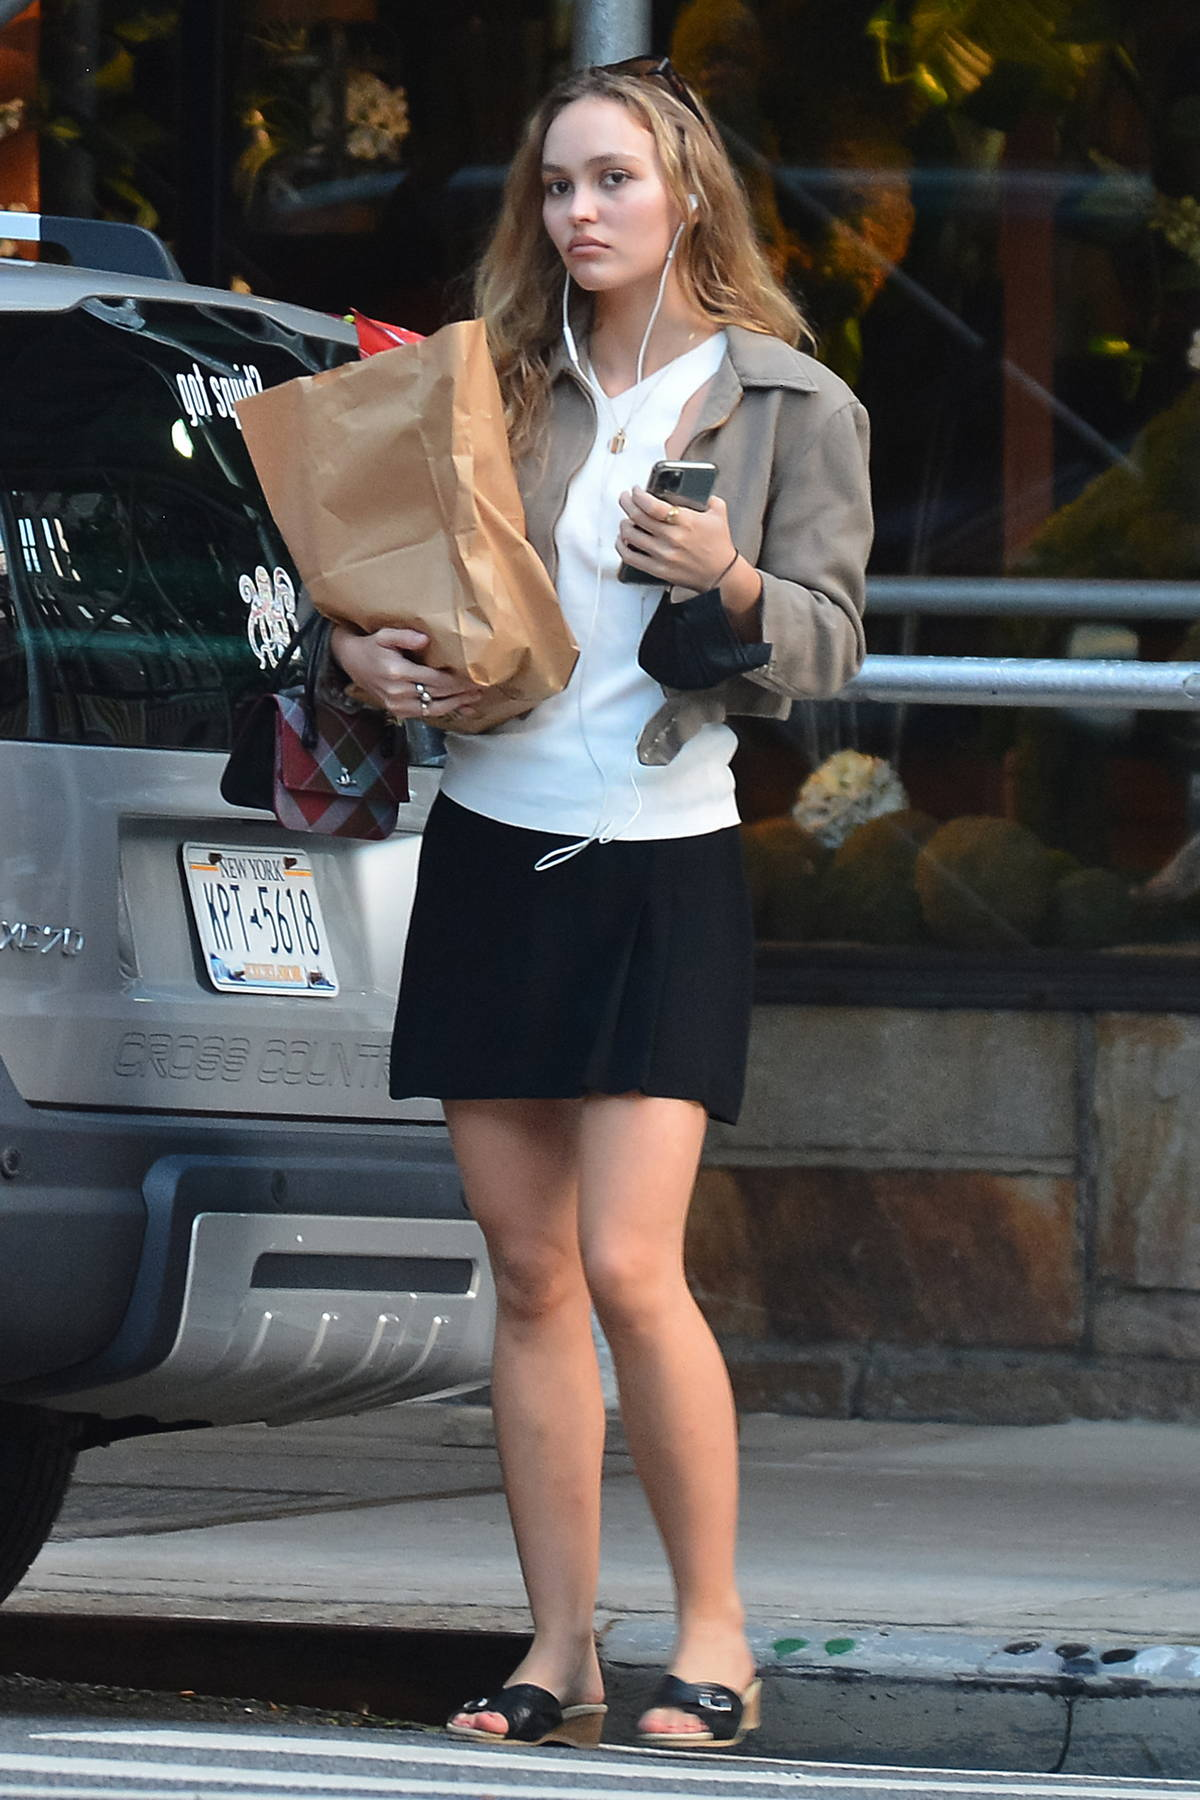 Lily-Rose Depp wears a black mini skirt with a white top while picking up some groceries in New York City